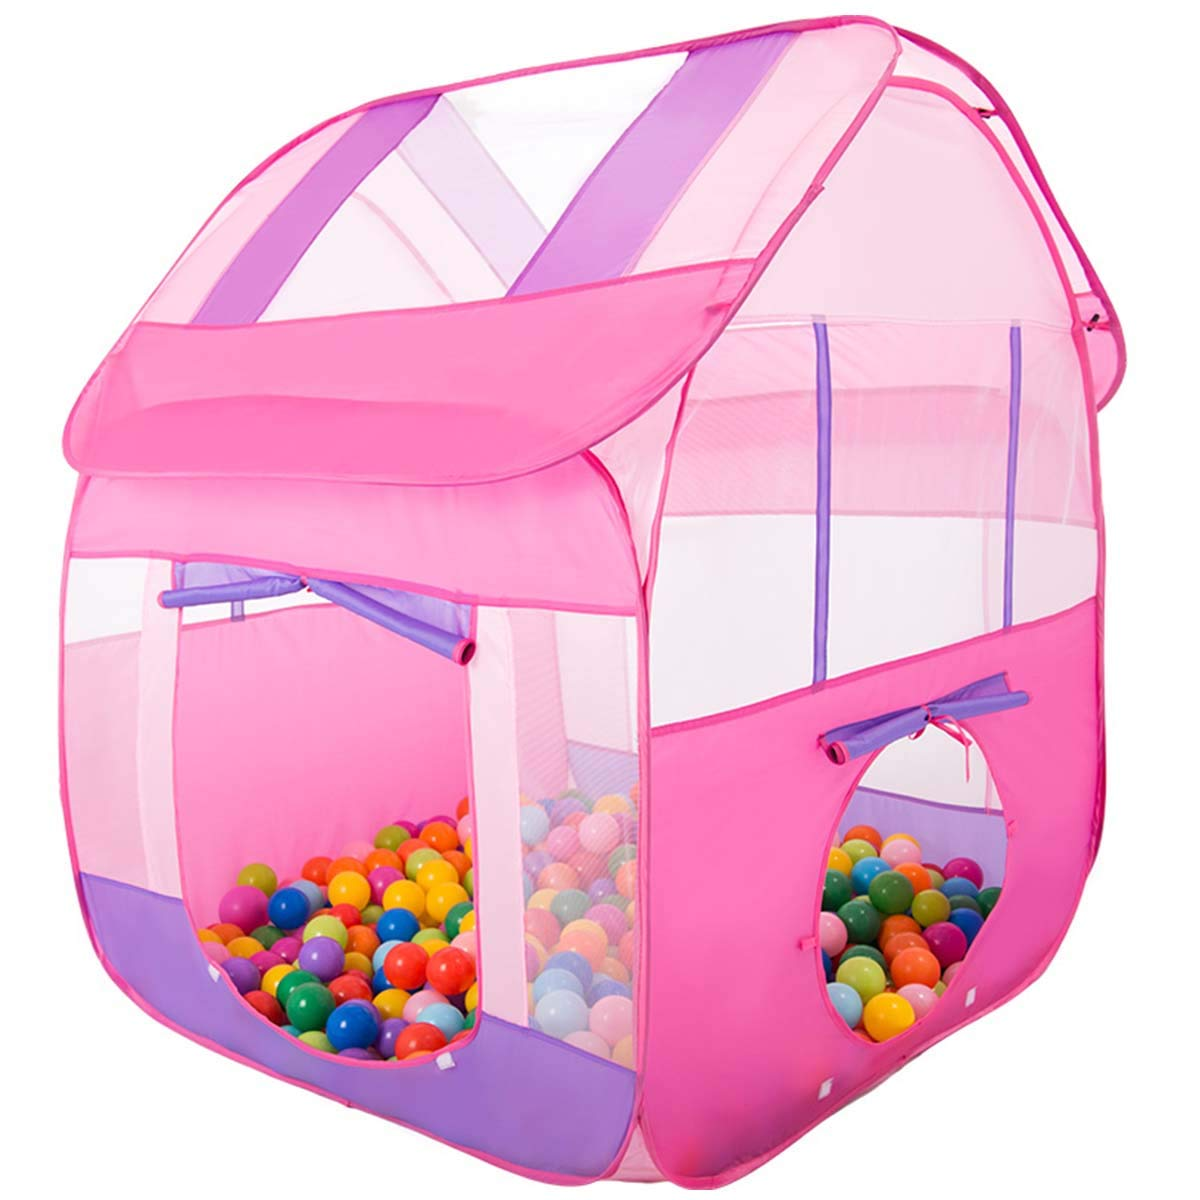 Aubeco Princess Pink Pop-up Play Tent Children Big Portable Play House Tent, 47.2''X 47.2''X 51.2''